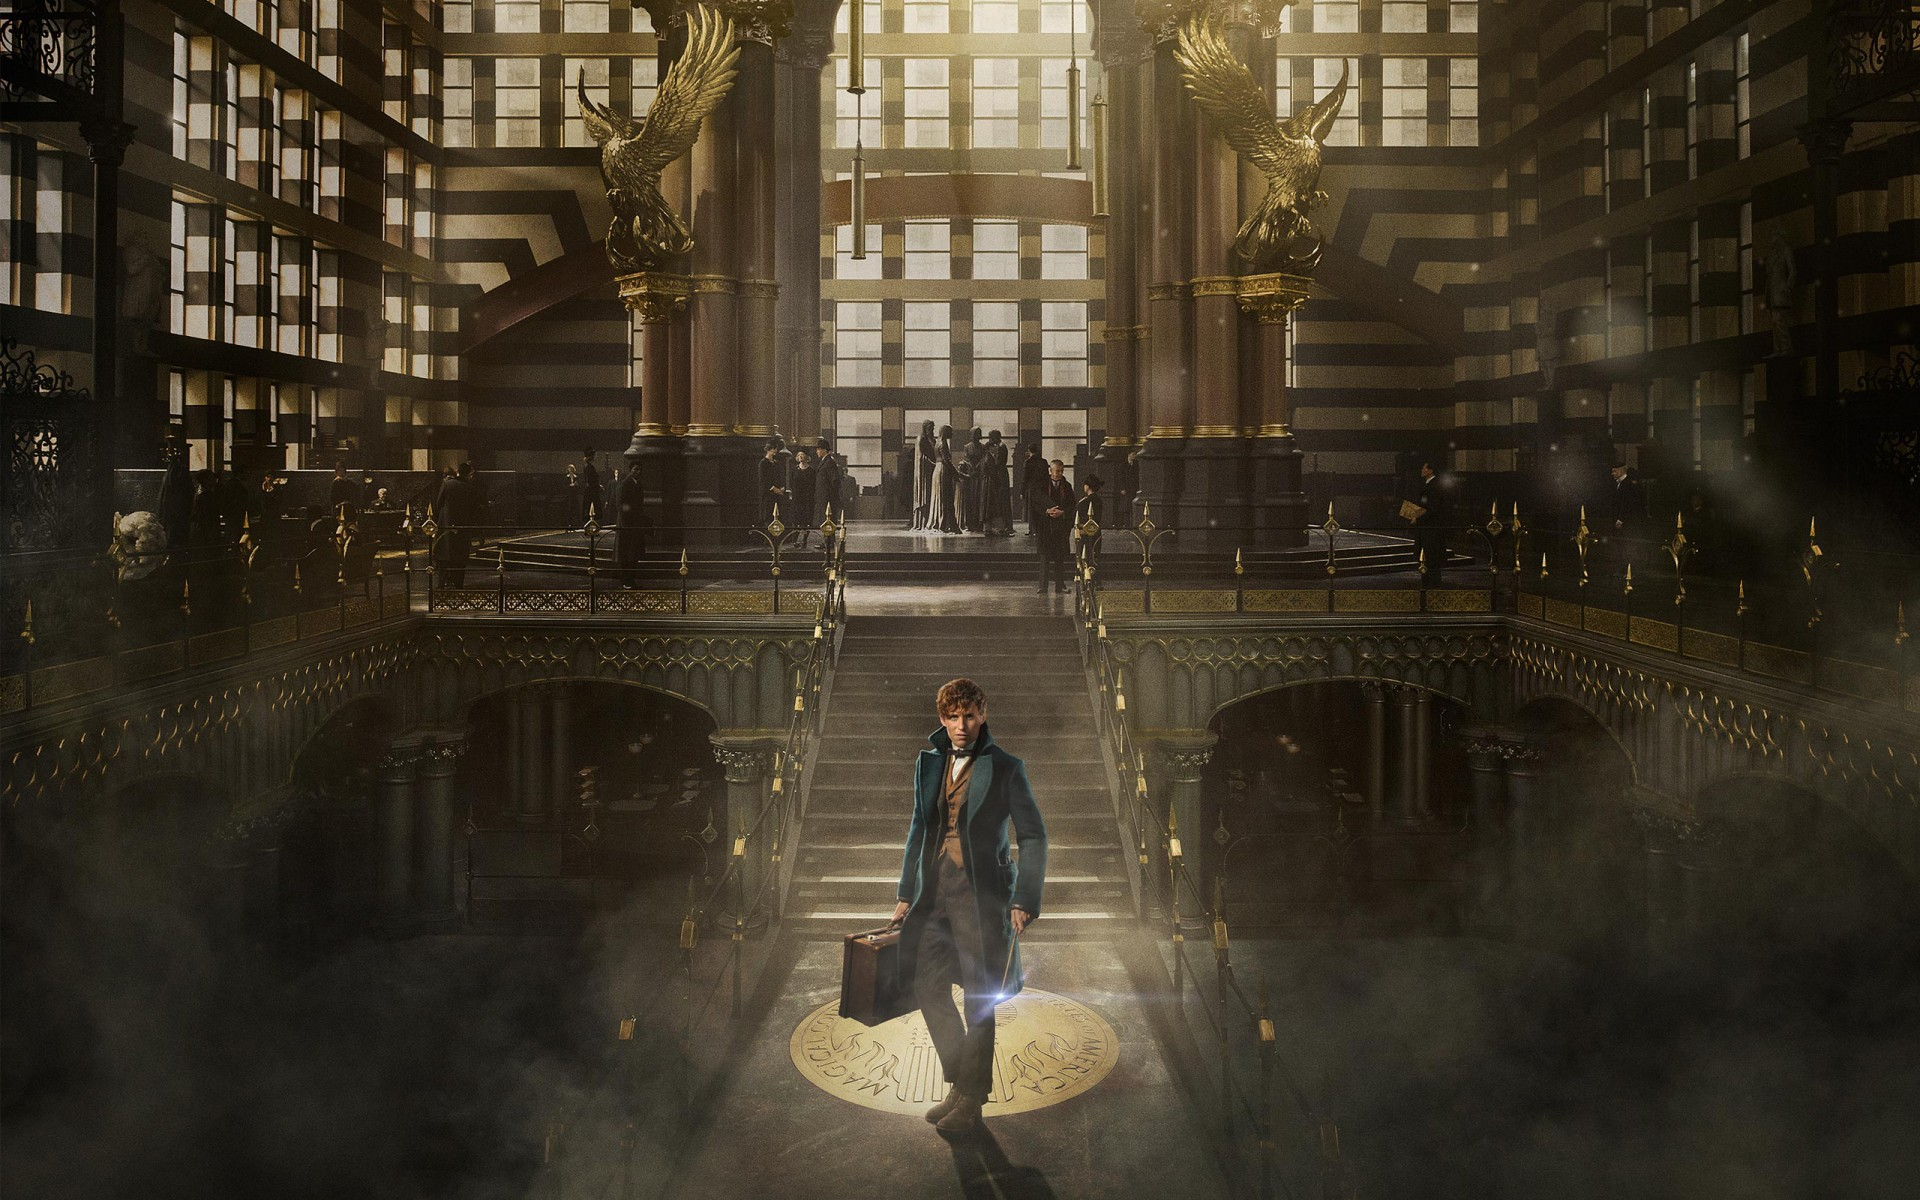 Saturday Night at the Movies: Fantastic Beasts and Where to Find Them review